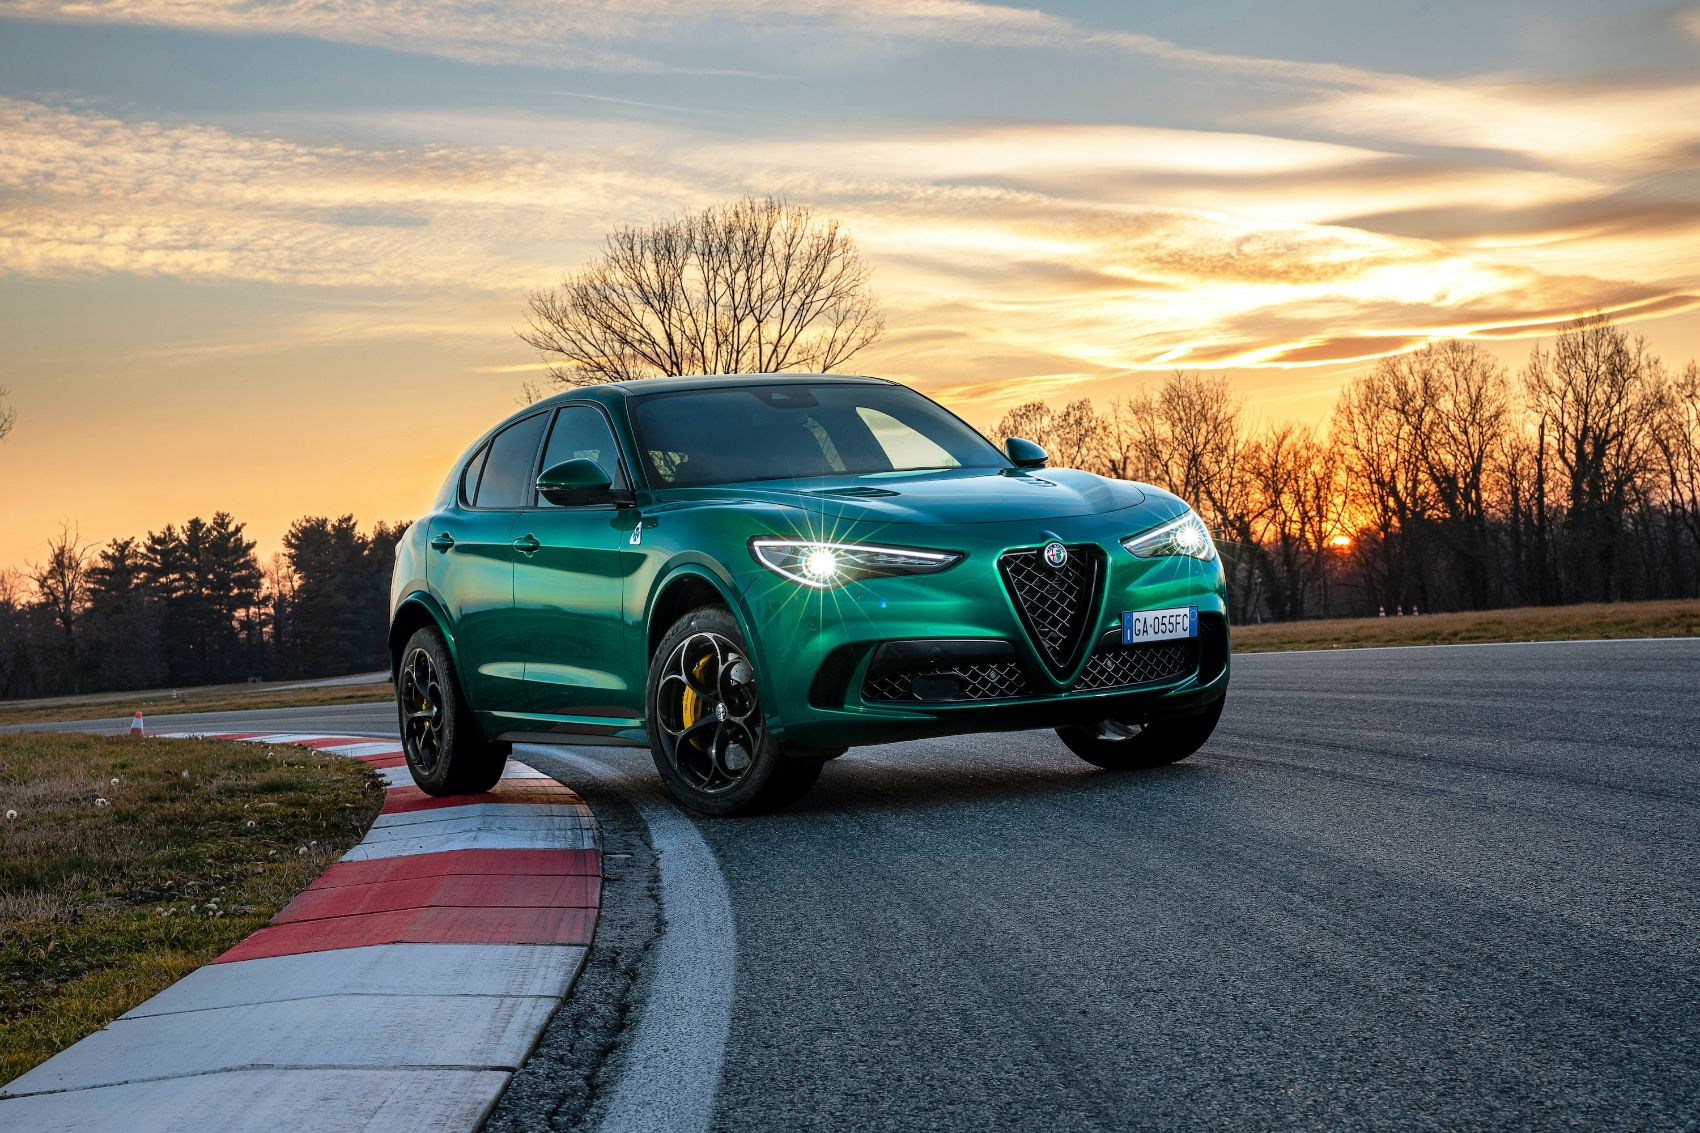 2021 Alfa Romeo Stelvio Overview: Pricing, Trim Levels, Tech & Safety Features & More